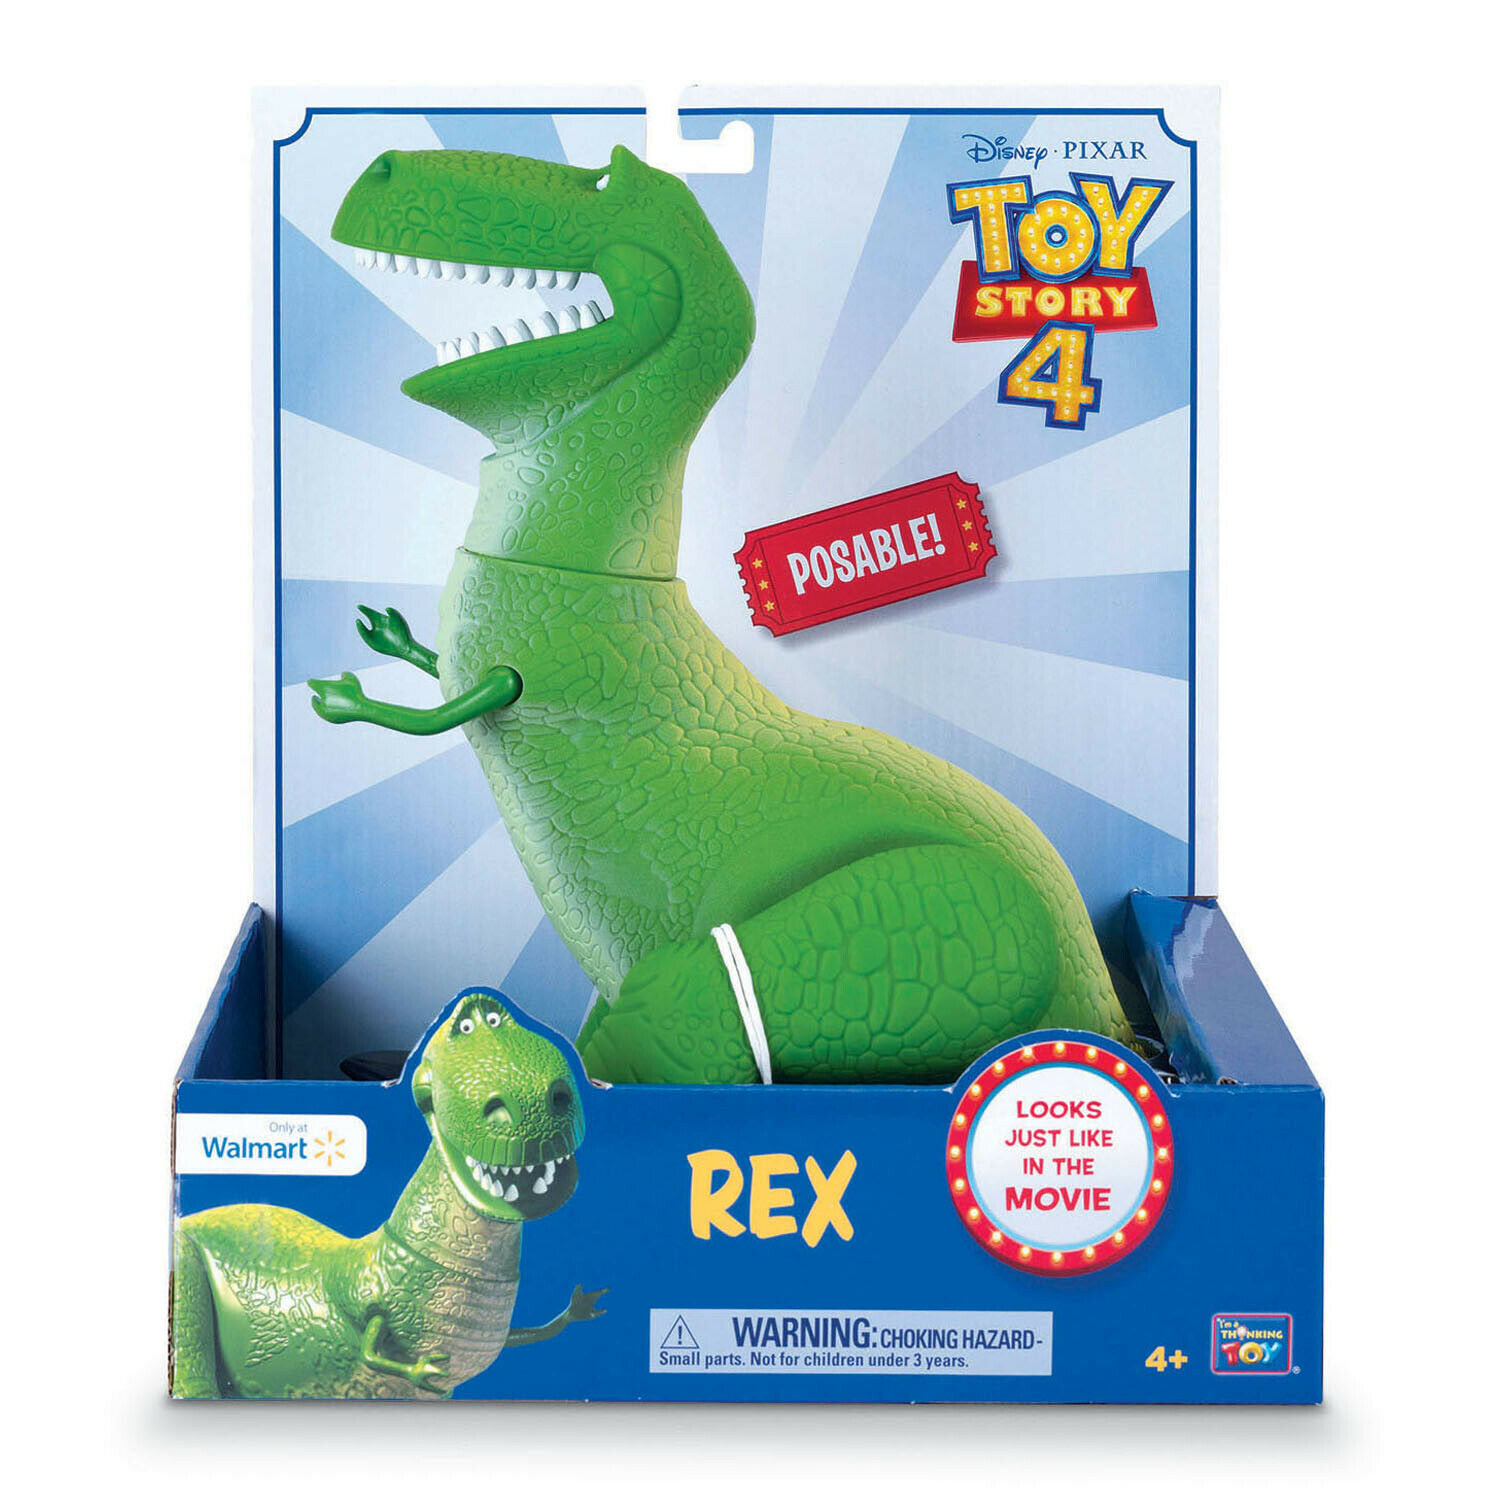 Disney Pixar Toy Story 4 Movie Film Posable Rex The Dinosaur Figurine EXCLUSIVE